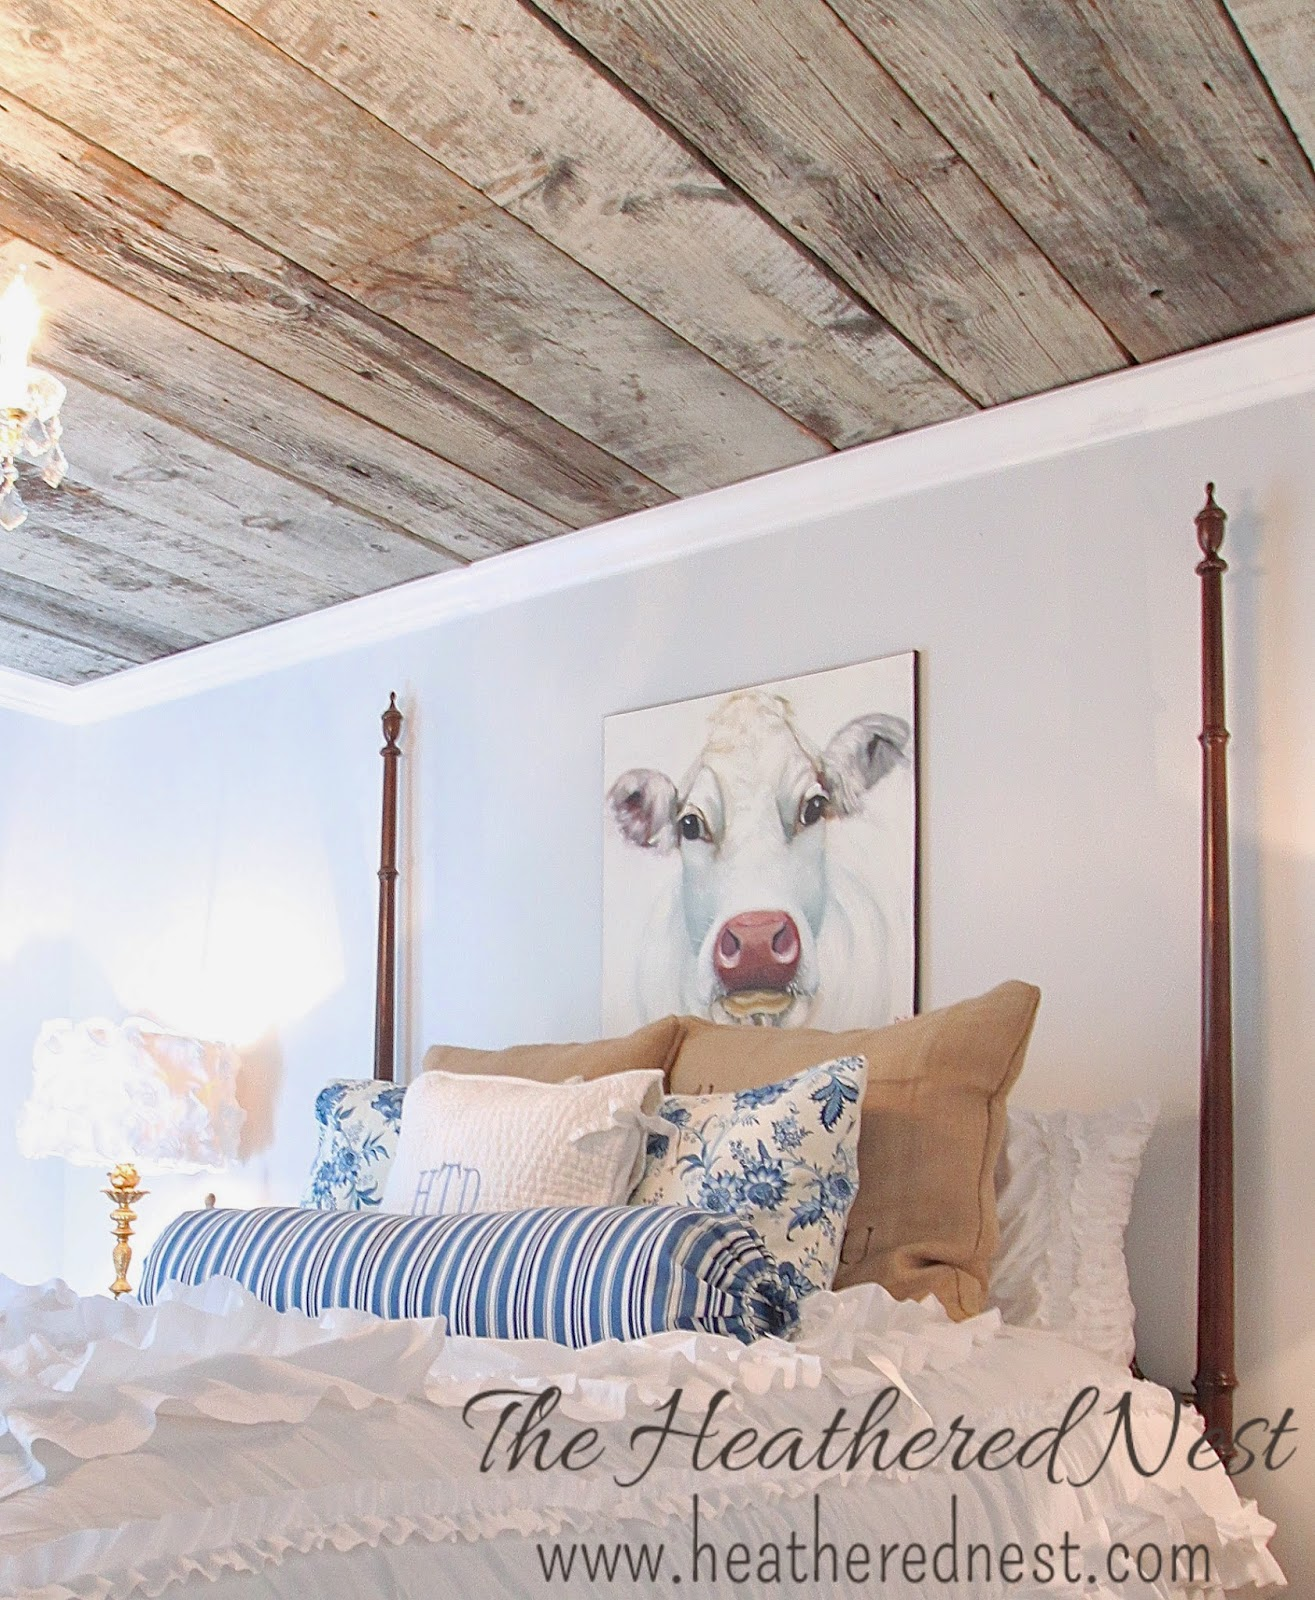 heathered nest, heathered nest guest room, heathered nest cow art, modern country bedroom, barnboard ceiling, blue and white bedroom